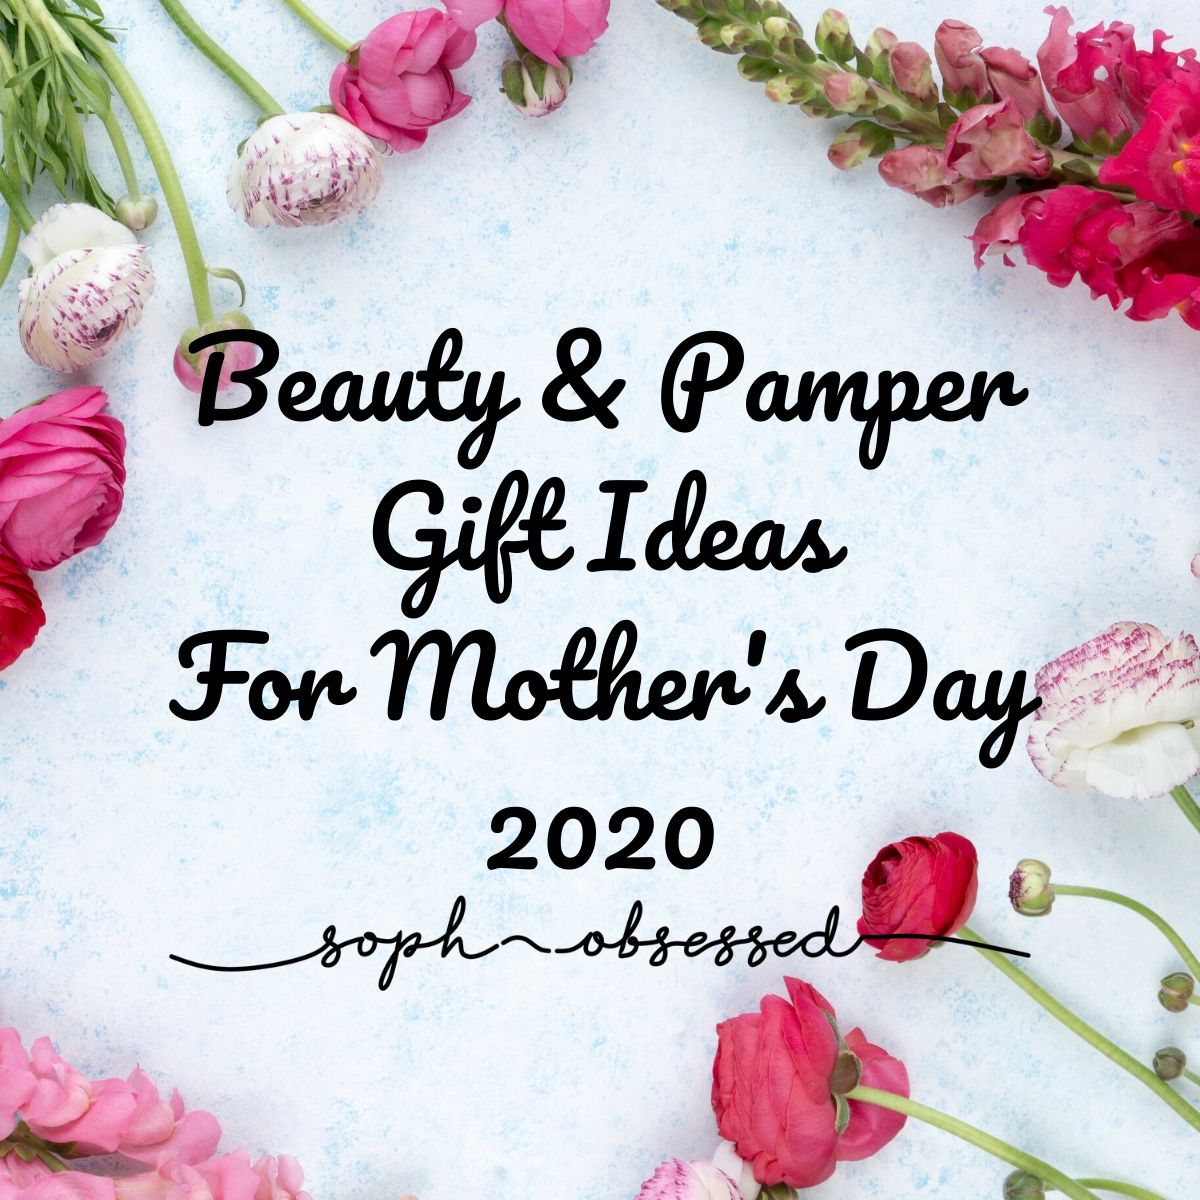 Beauty & Pamper Gift Ideas For Mother's Day 2020 (AD Gifted)